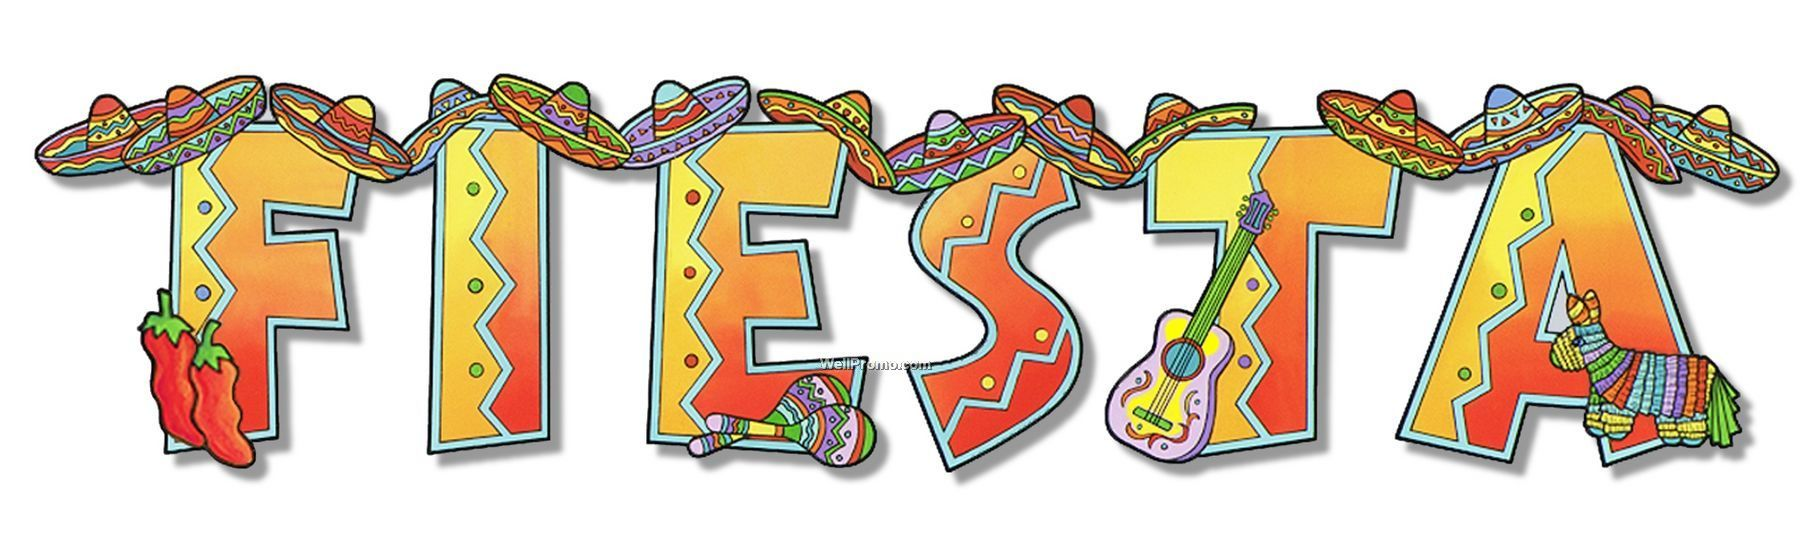 Free Fiesta Flags Cliparts, Download Free Clip Art, Free